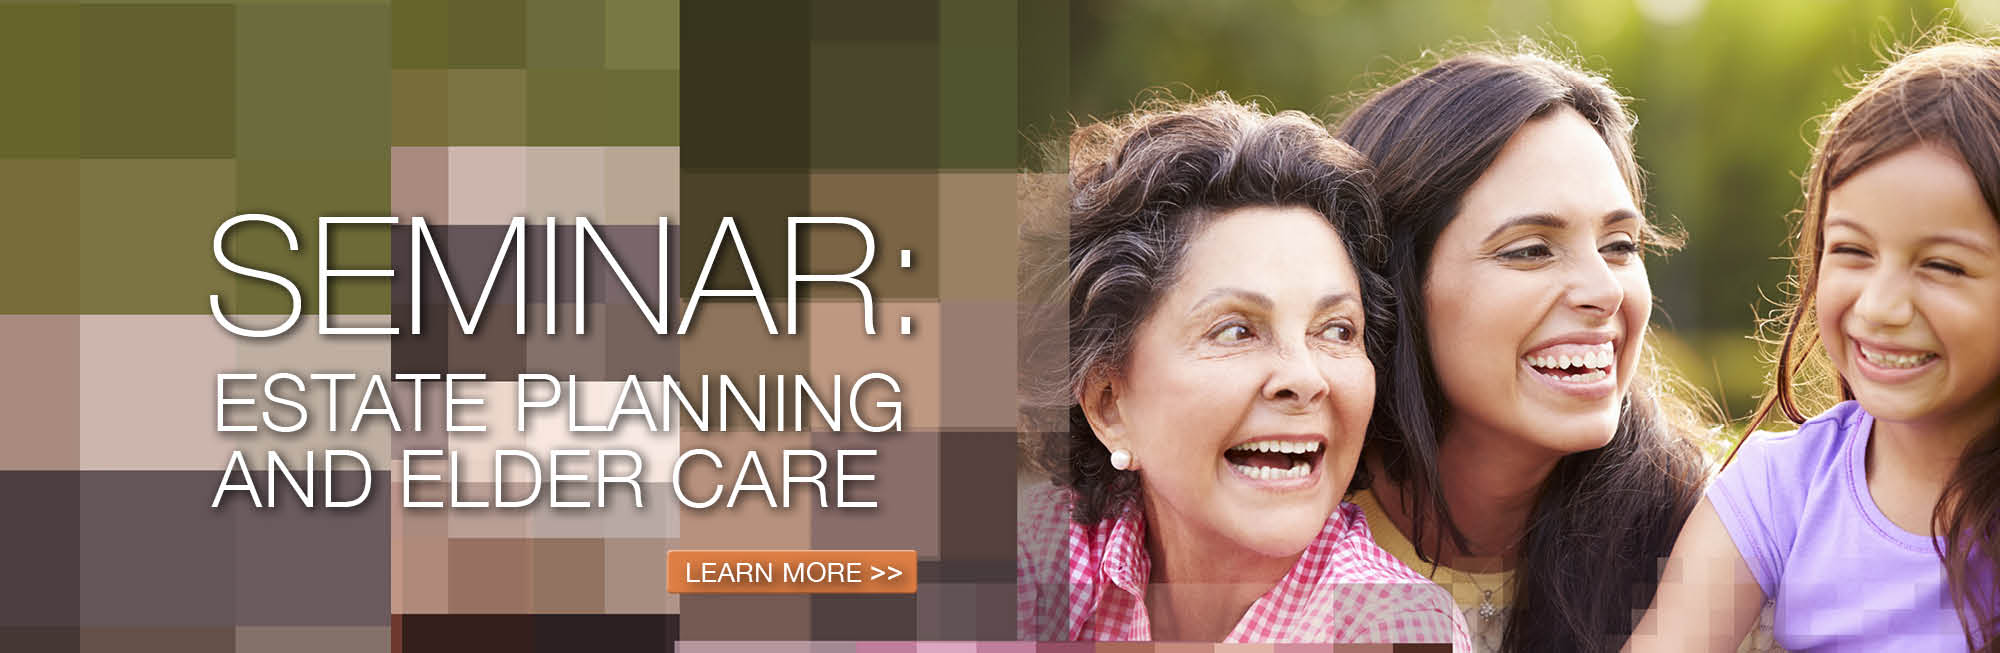 Estate Planning & Elder Care Seminar